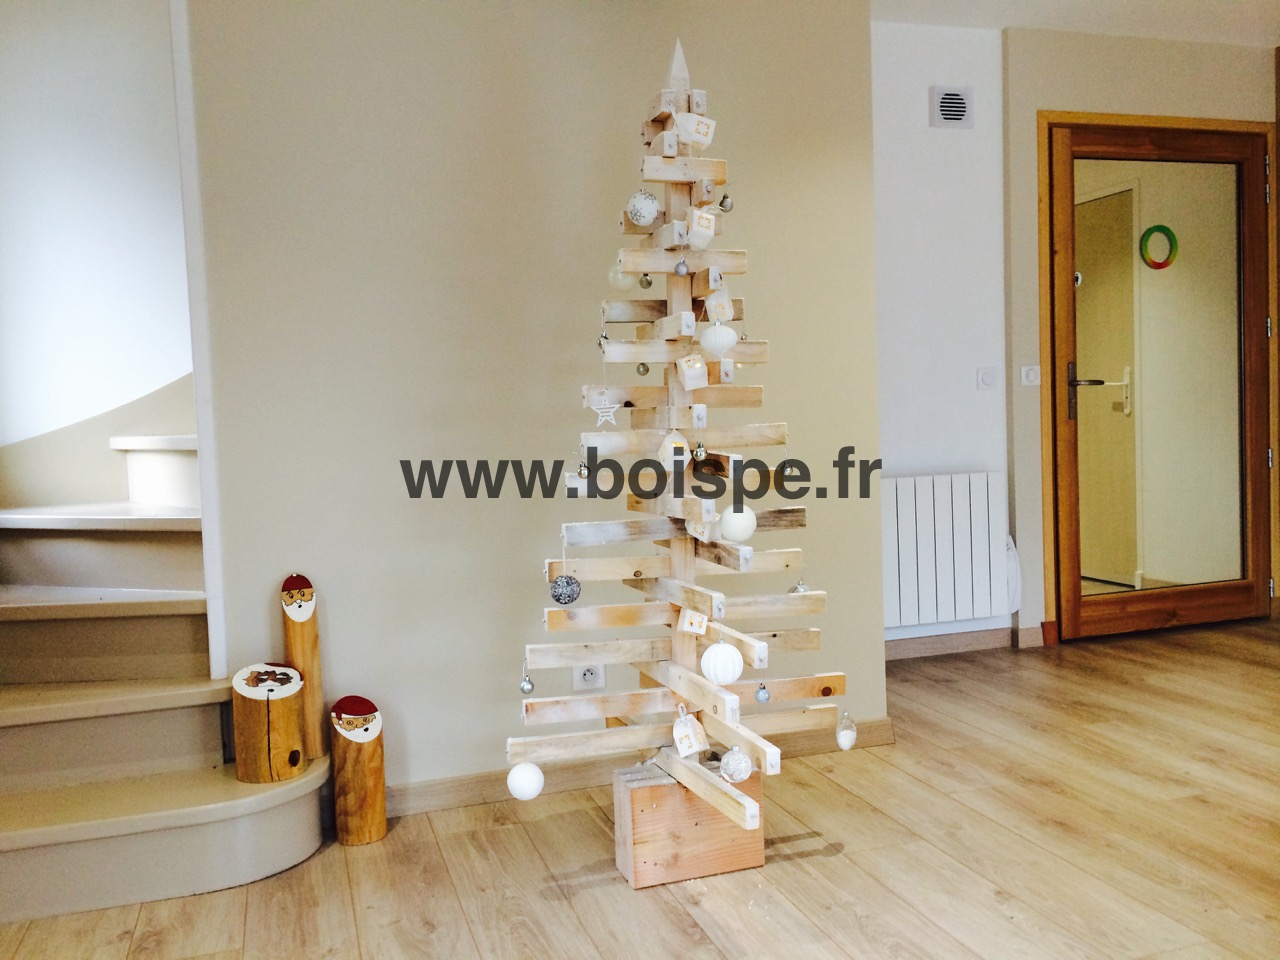 Sapin noel bois pe3 fabriquer un sapin de no l partir for Fabrication decoration de noel